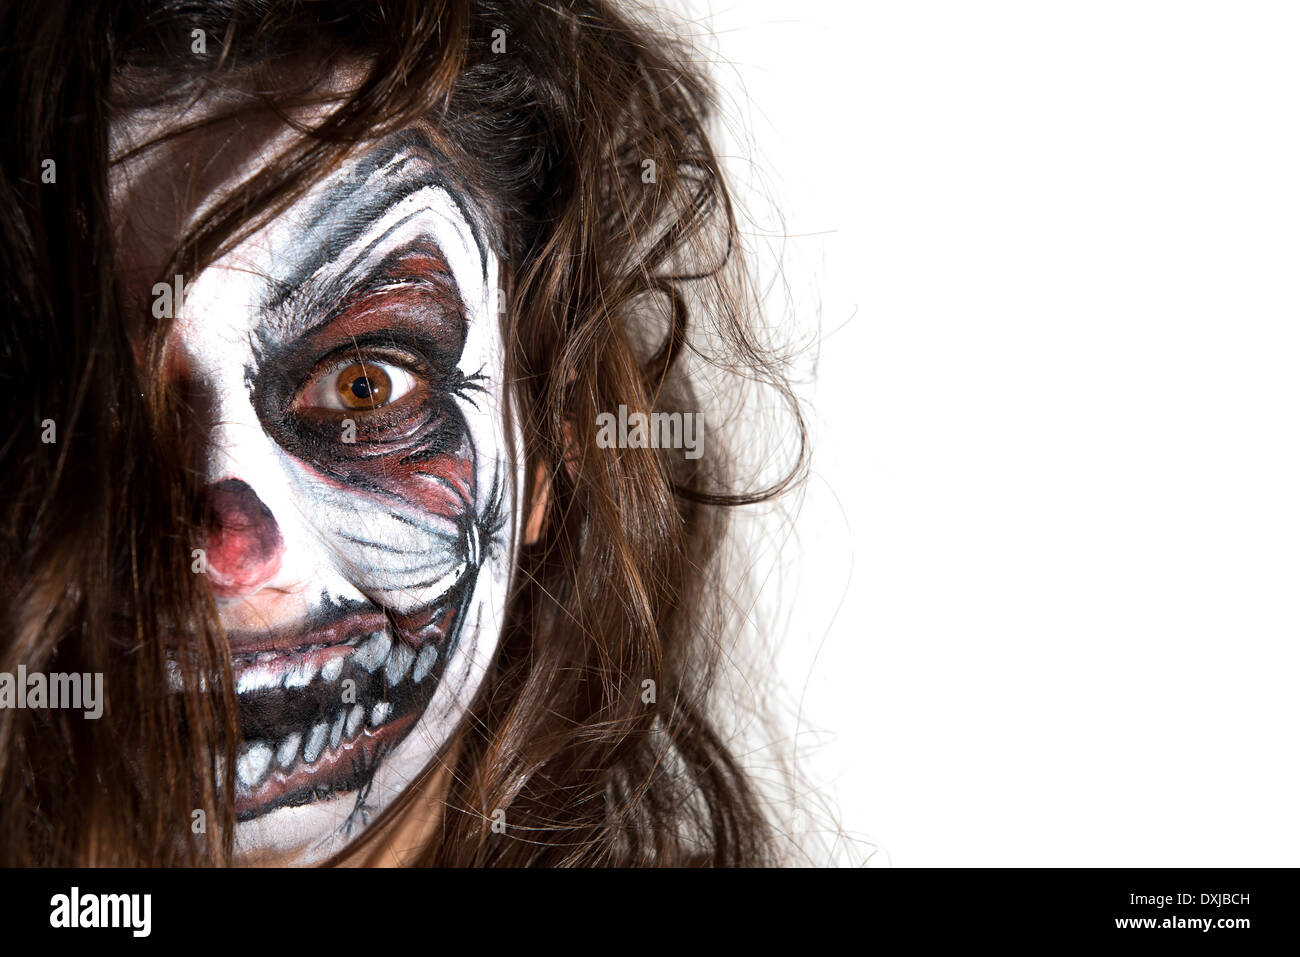 Teenage Girl Scary Clown Face Stock Photos Teenage Girl Scary